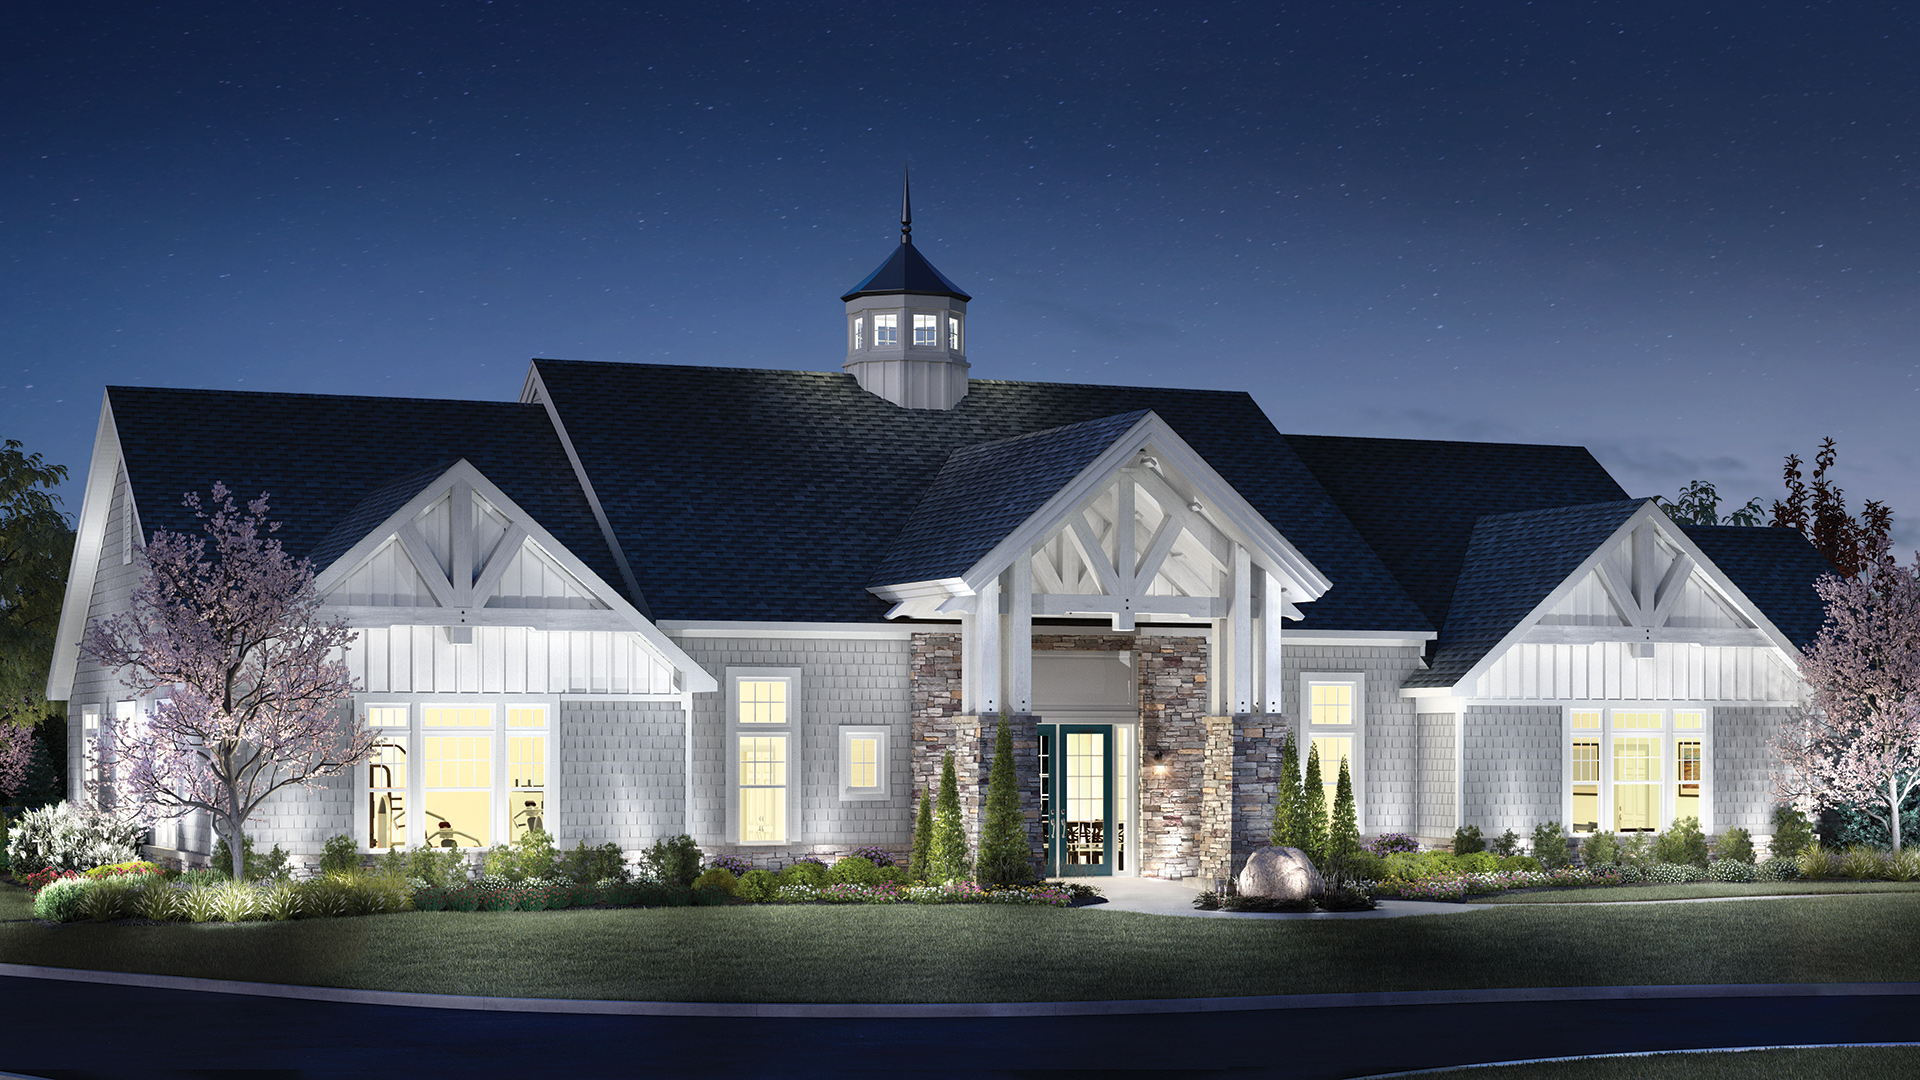 Future Vista Club - A 3,900-square-foot clubhouse with fitness center, main hall, mailroom and more